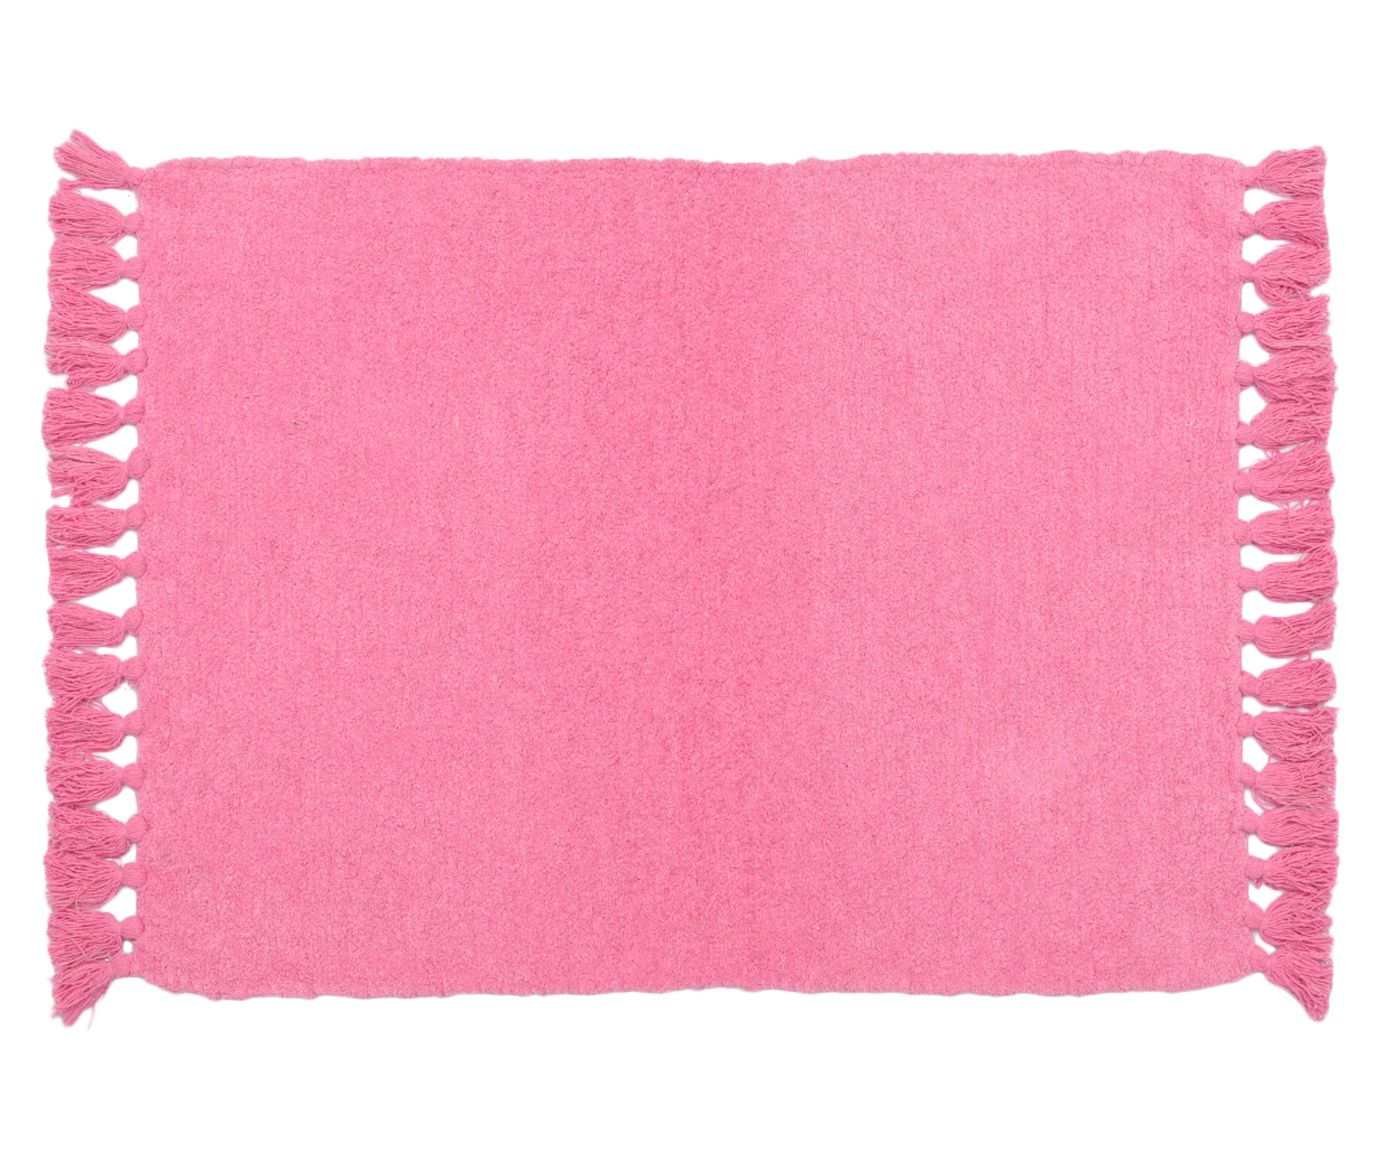 Tapete Indiano Brahma Rosa - 60x90cm   Westwing.com.br